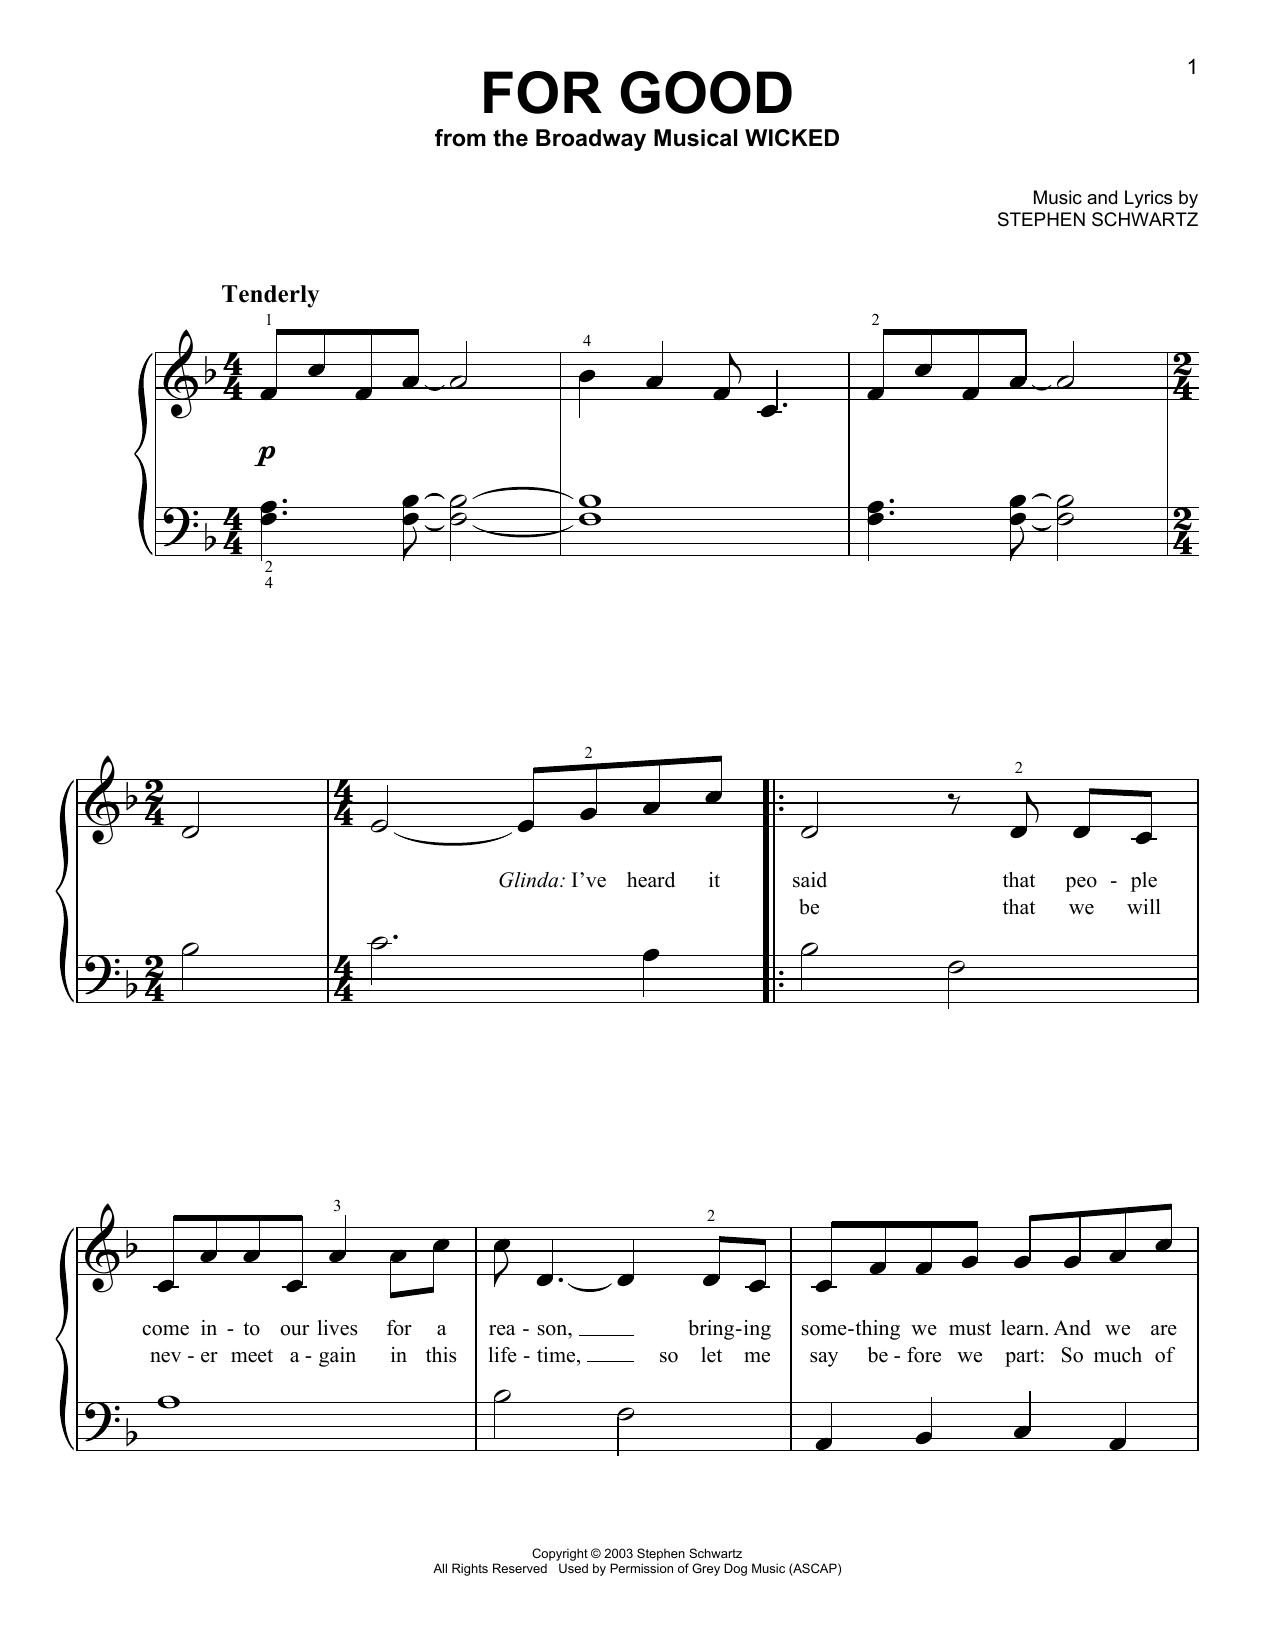 For Good Sheet Music